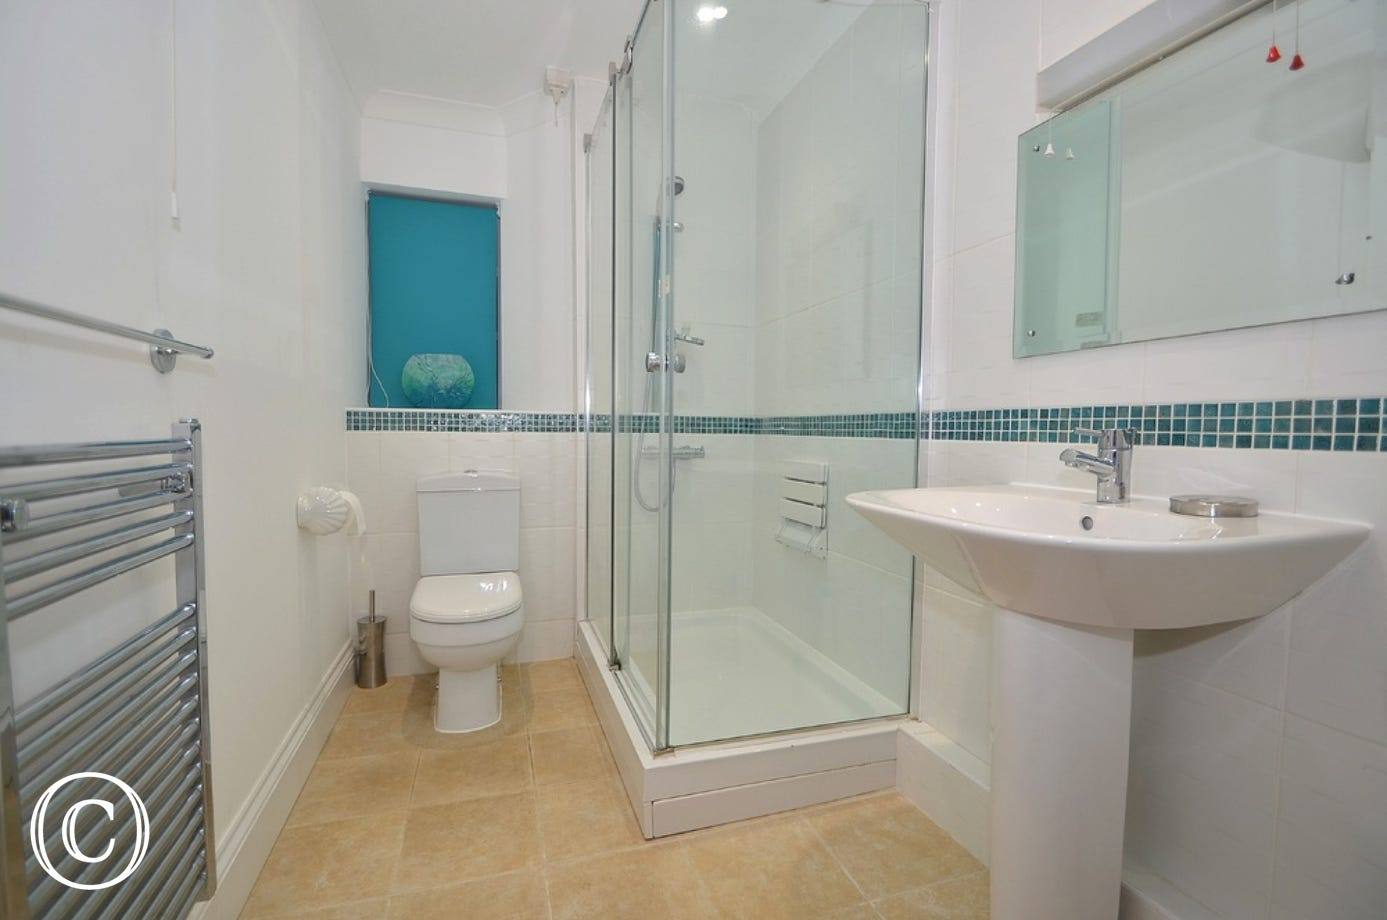 First floor bathroom for master and bedroom 2: Large walk in shower, WC, sink with overhead mirror and a heated towel rail.